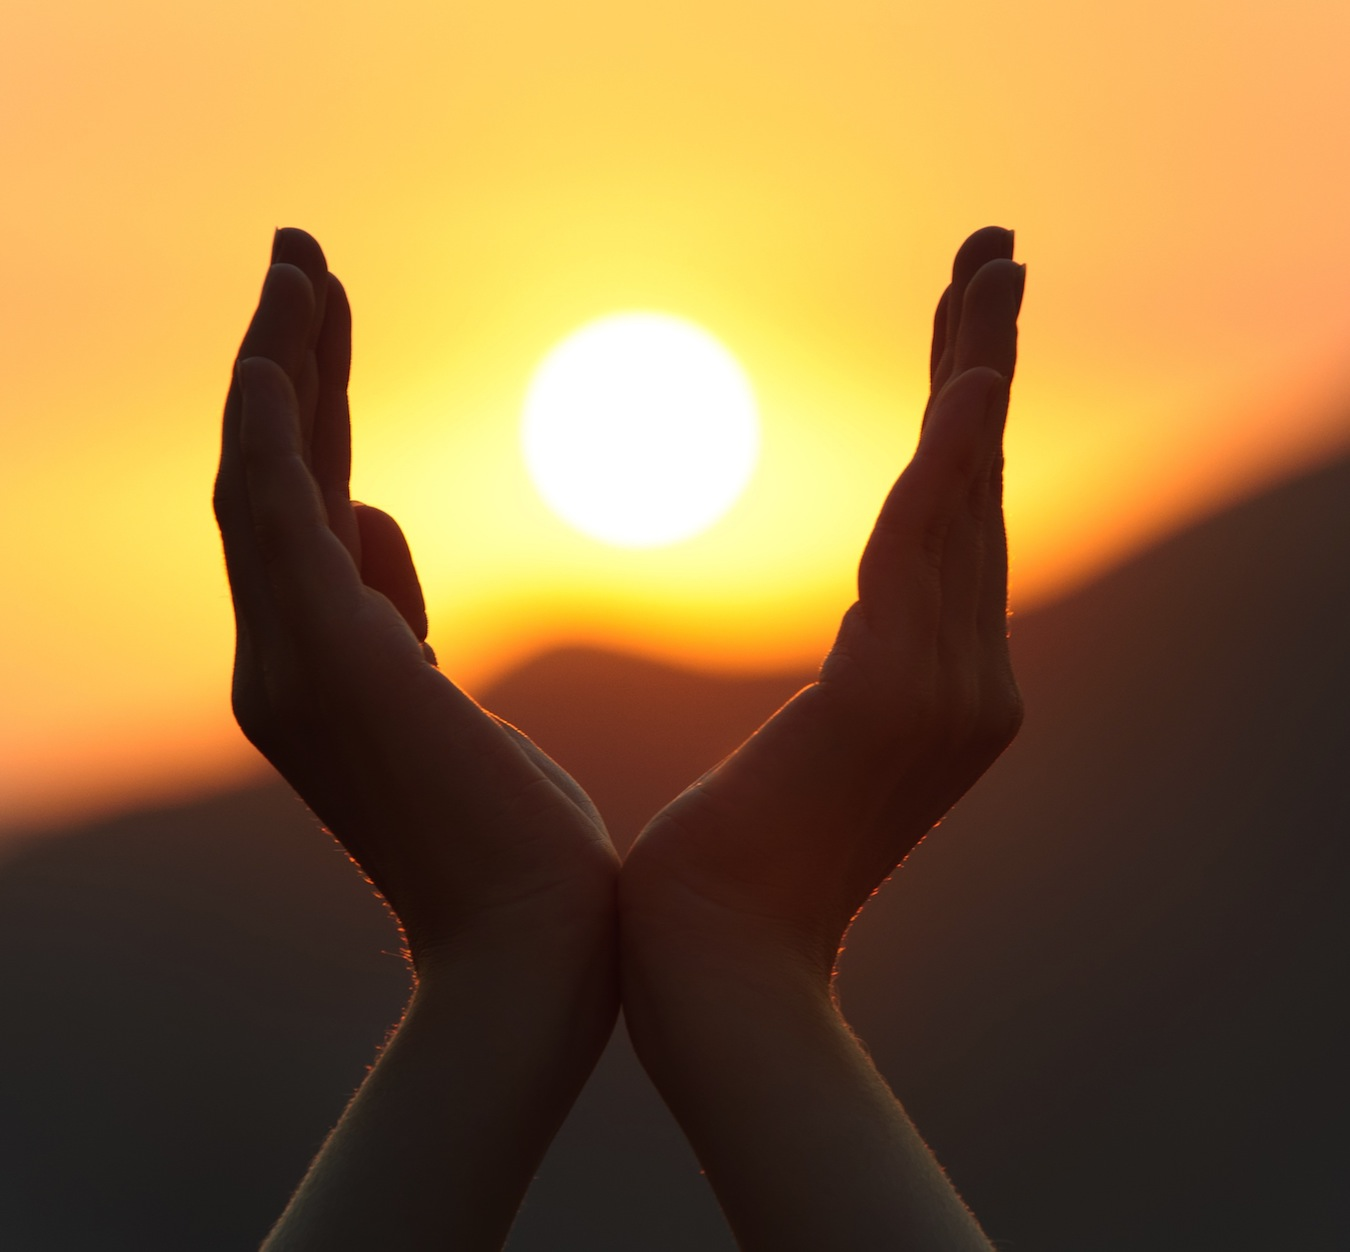 Setting sun in between two hands